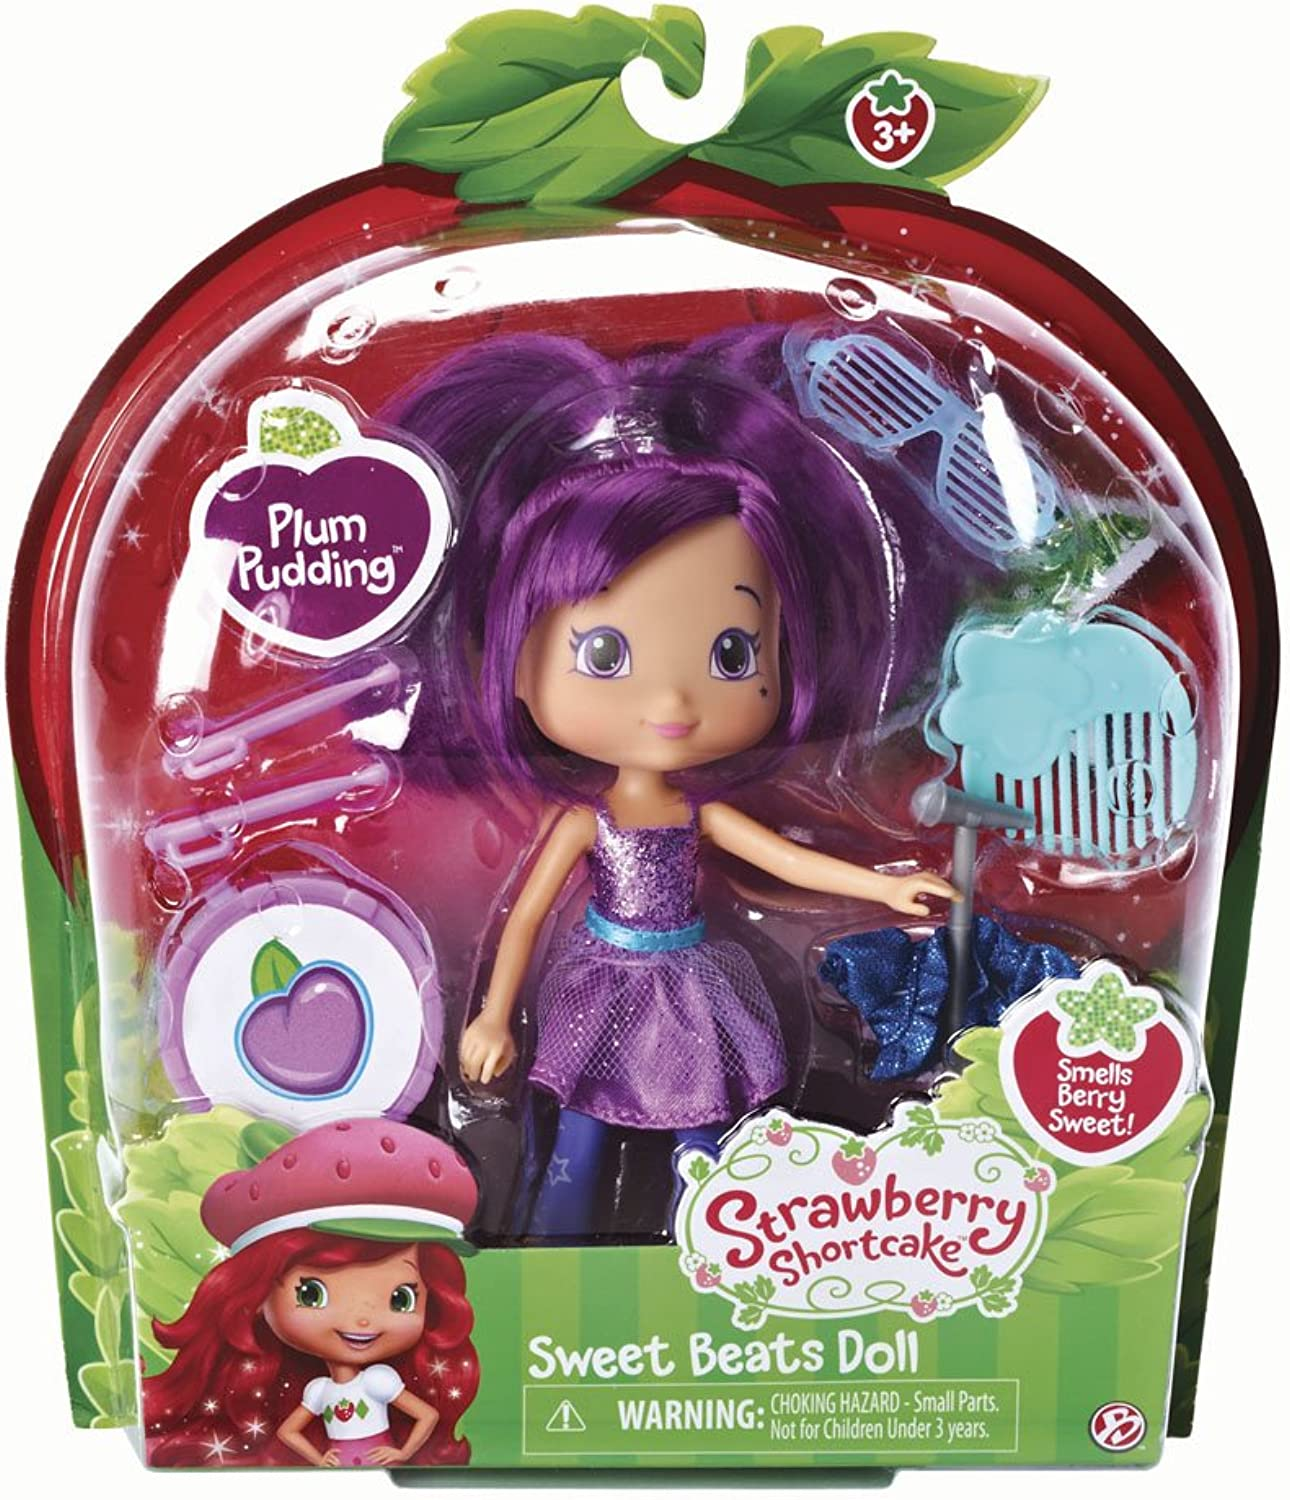 The Bridge Direct, Strawberry Shortcake Sweet Beats Doll, Plum Pudding, 6 Inches